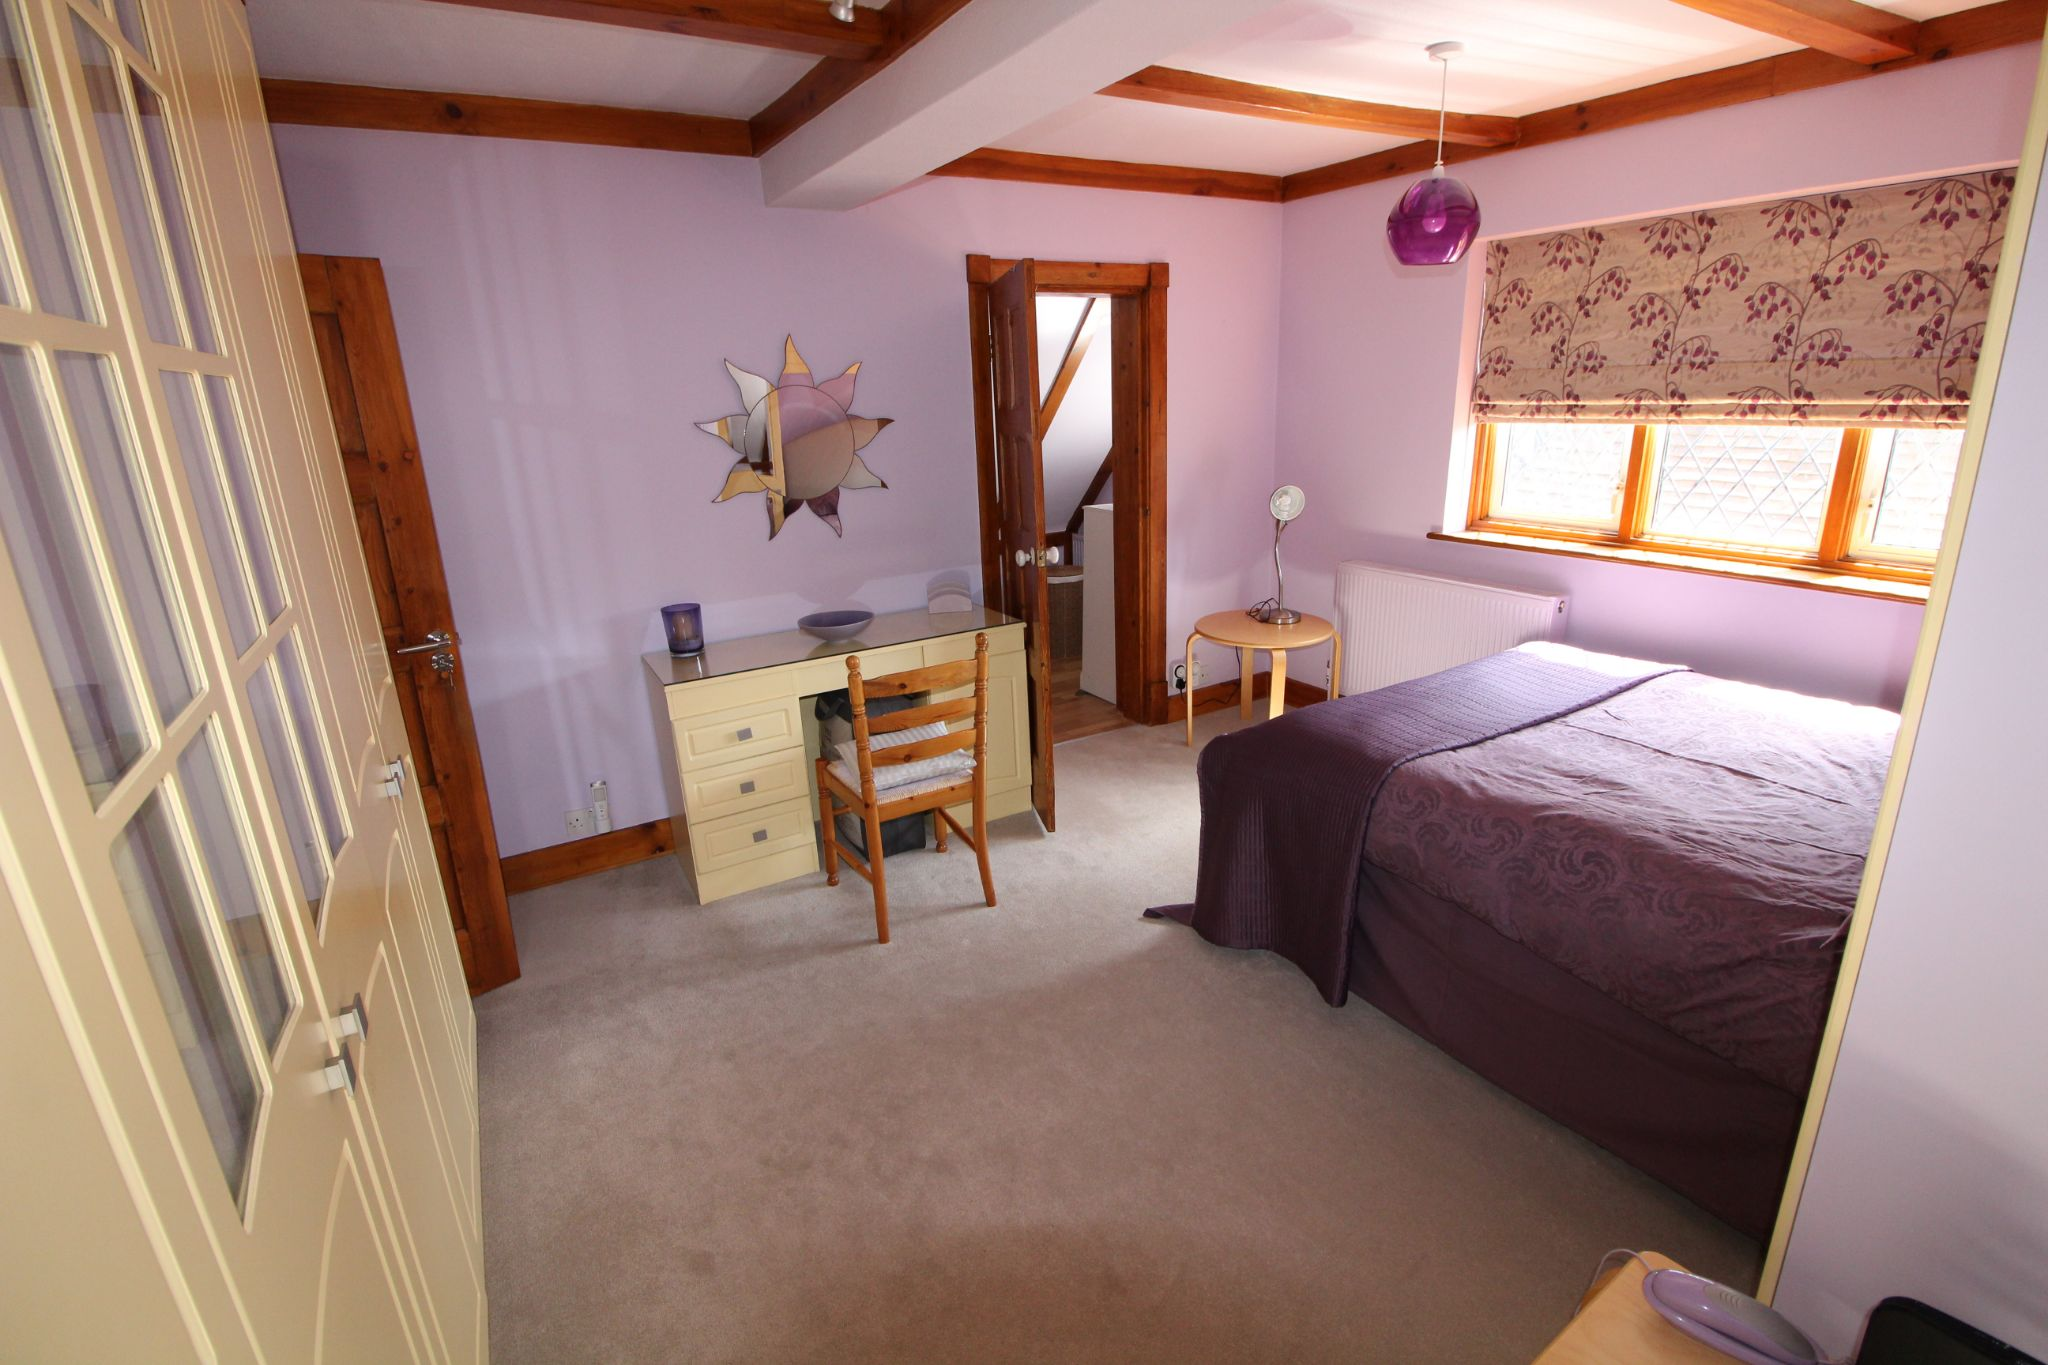 4 bedroom detached house For Sale in Potters Bar - Photograph 11